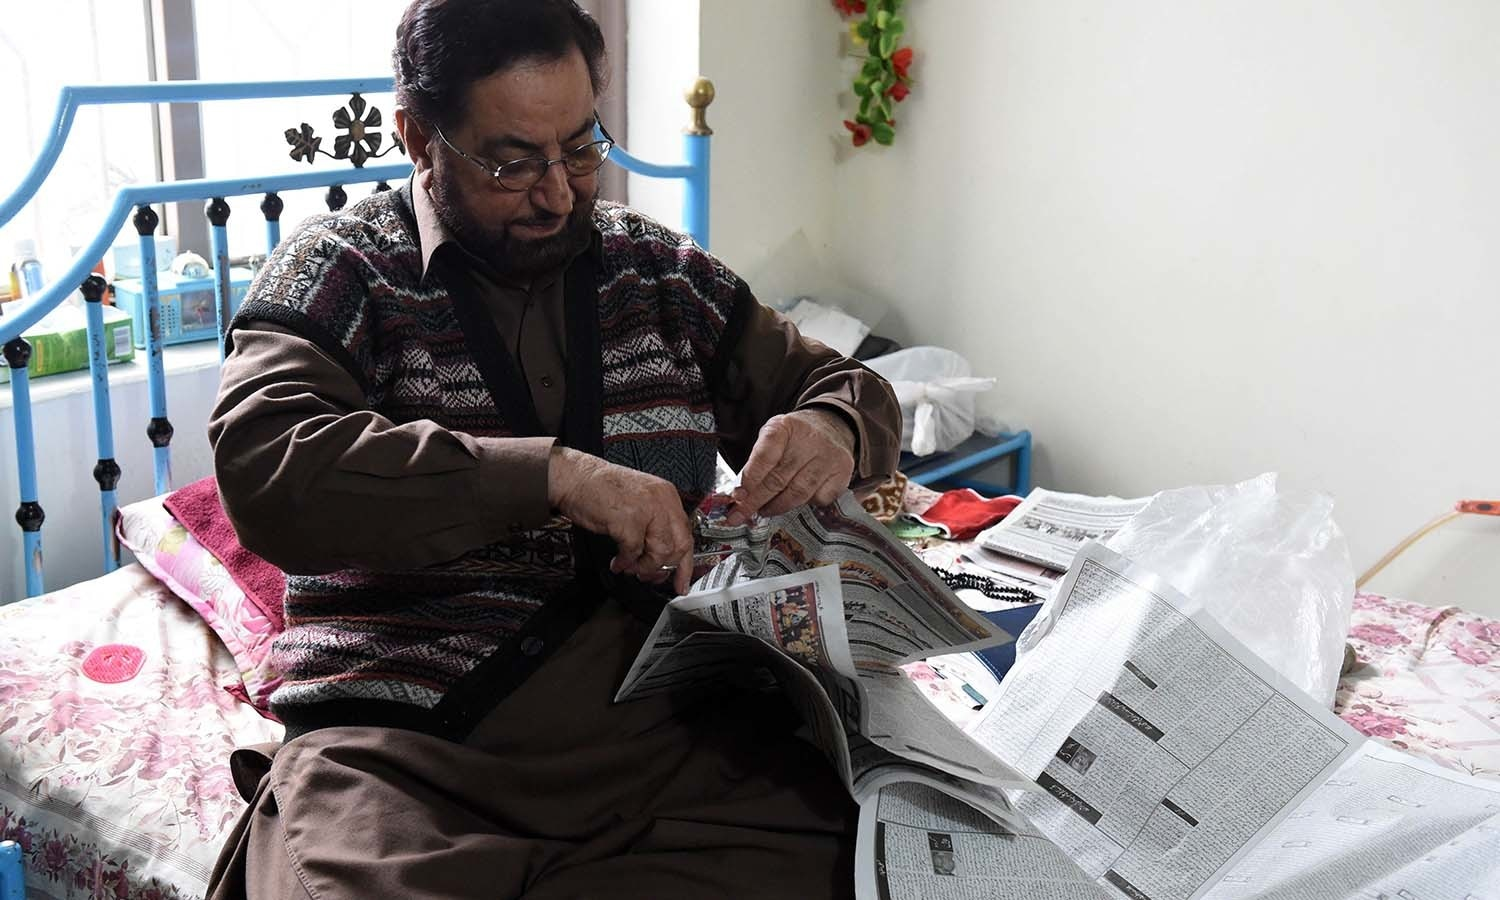 Haji Abdul Sammad Lehri cuts verses of the Quran from a newspaper at his residence. ─ AFP